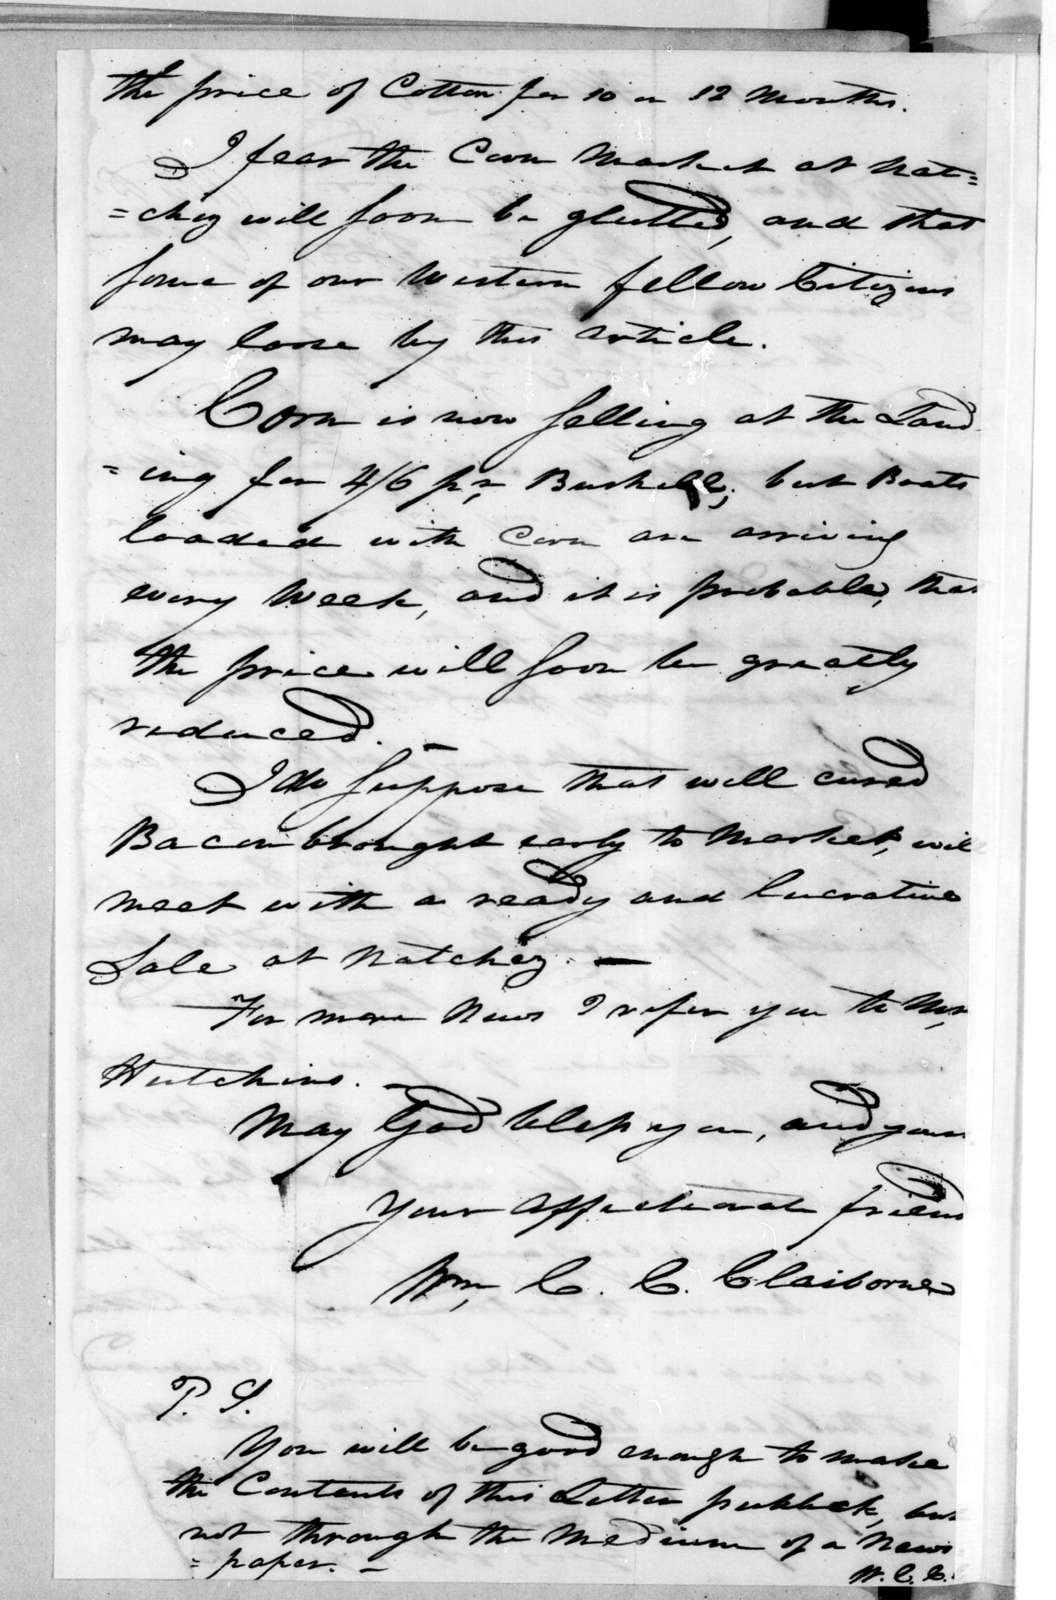 William Charles Cole Claiborne to Andrew Jackson, January 20, 1802